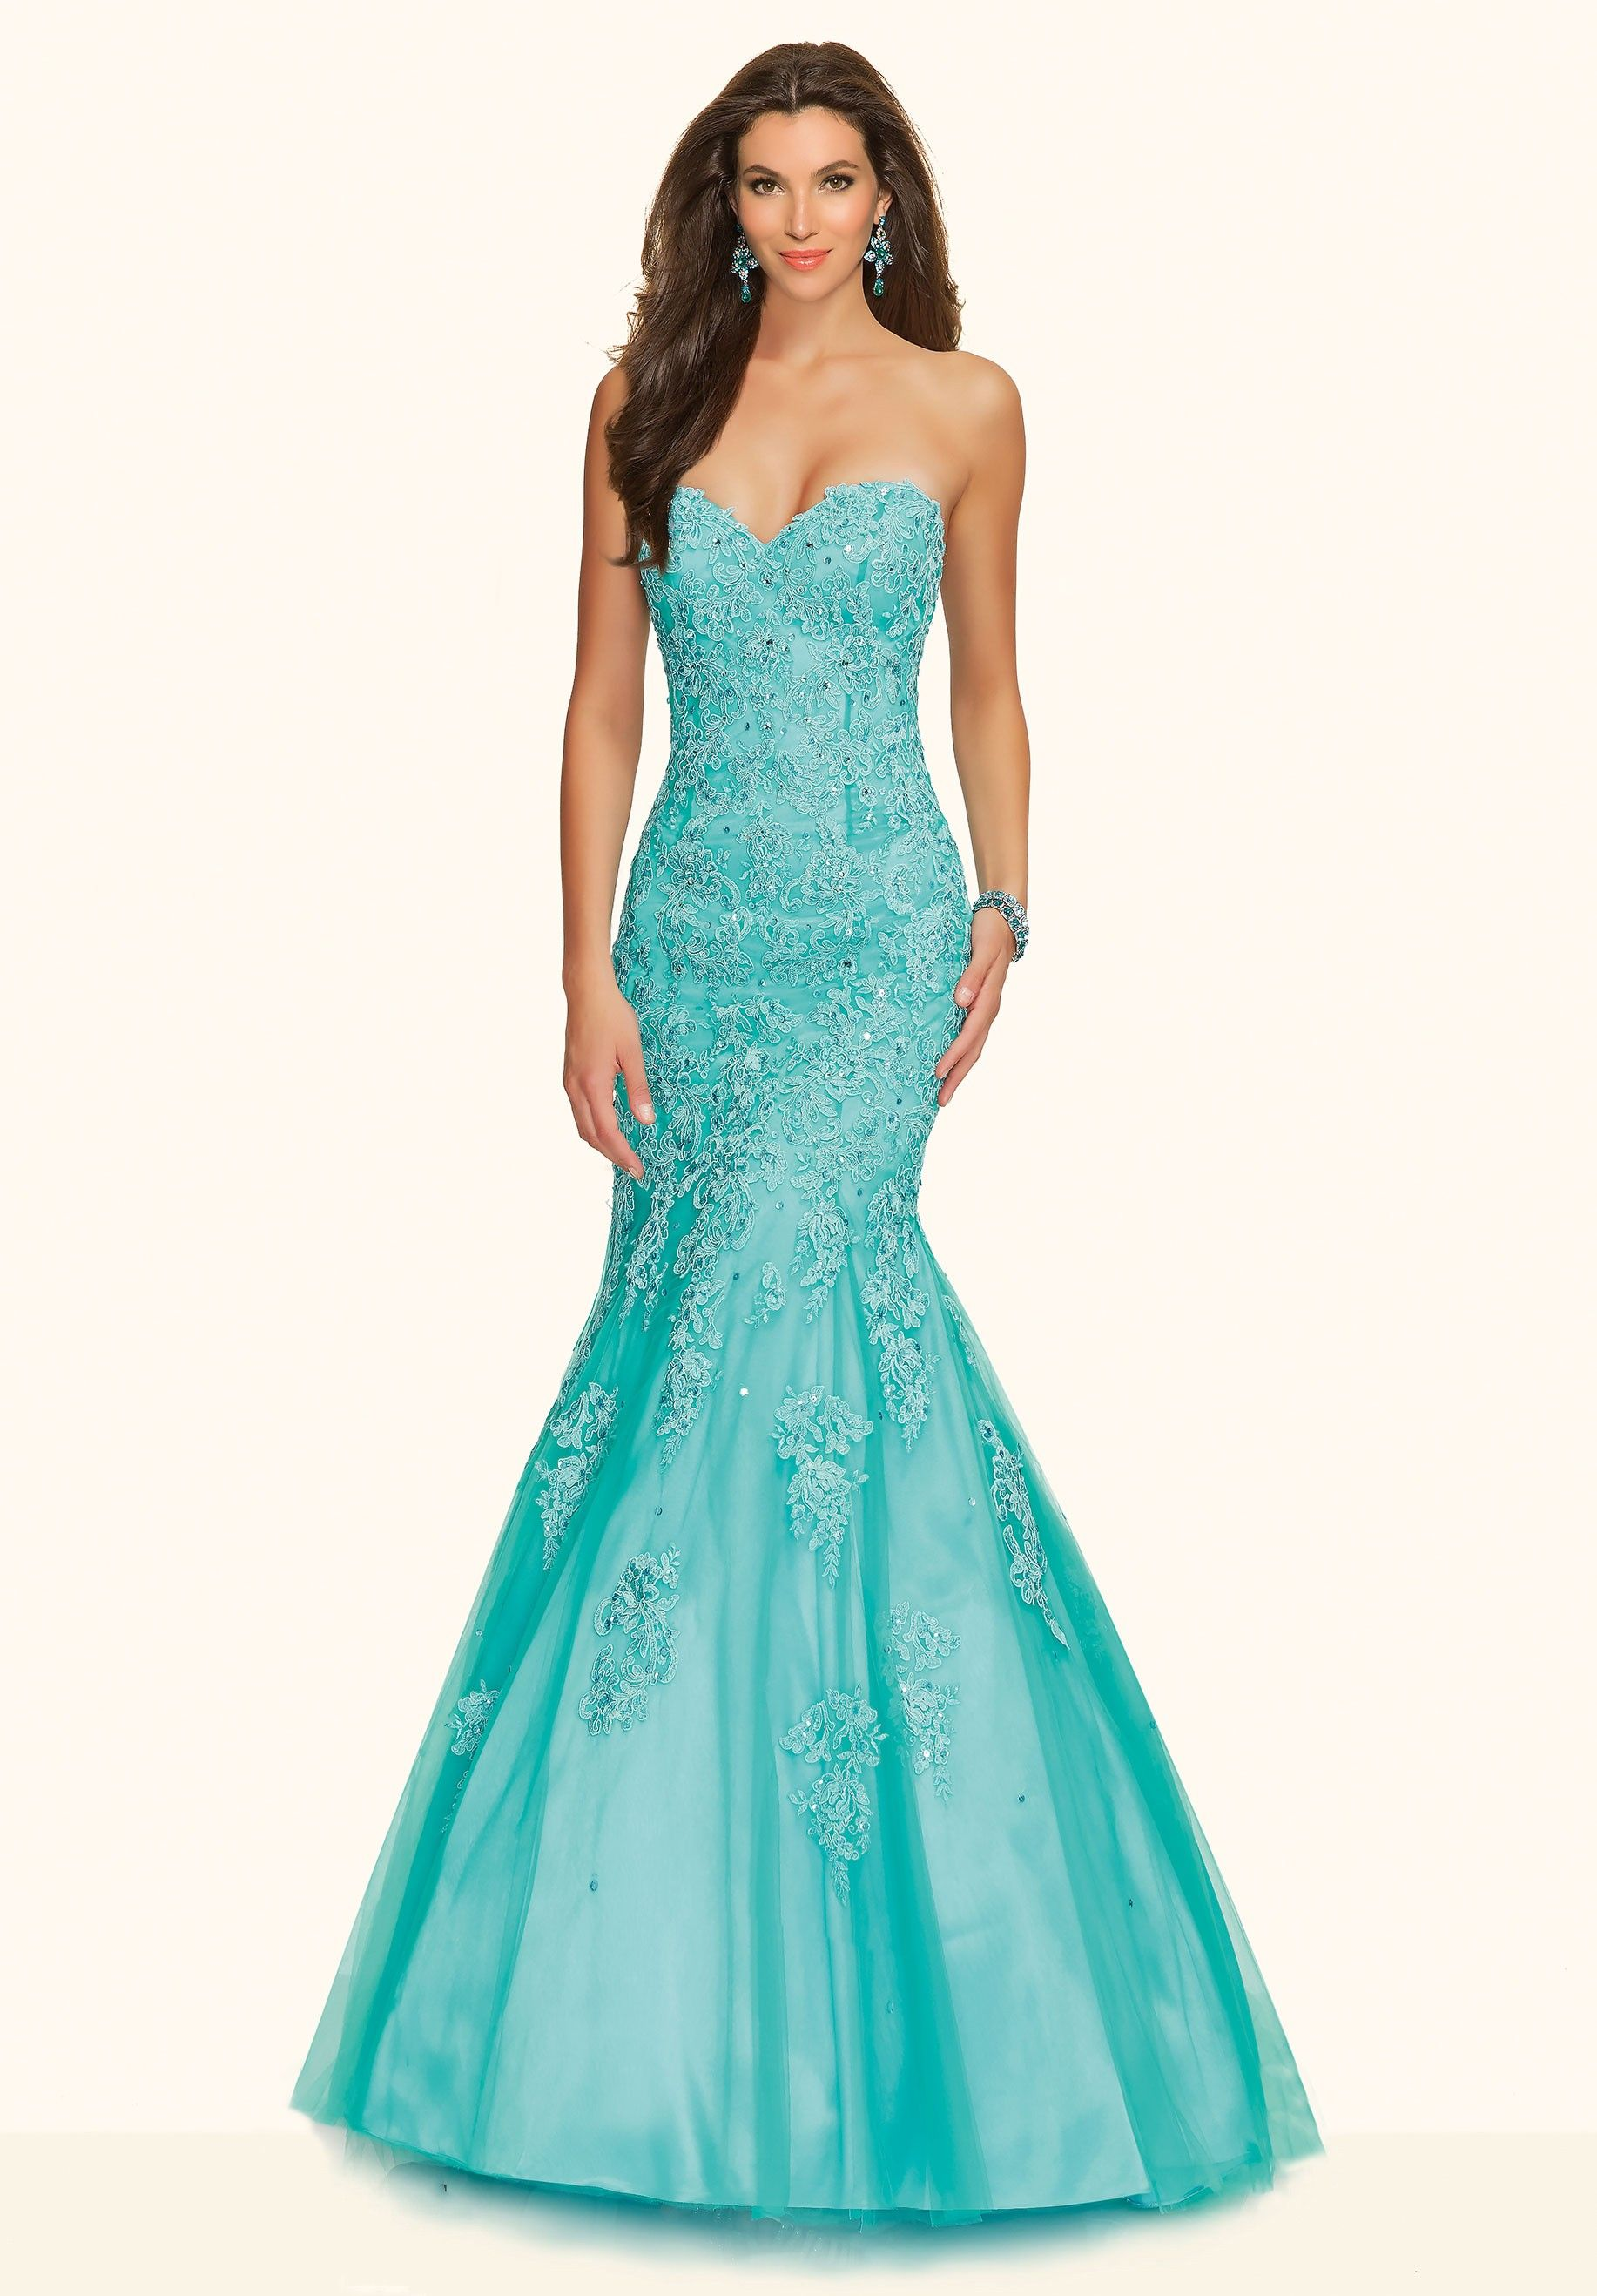 Blue Sweetheart Tulle Fit And Flare Trumpet Mermaid Prom Dress ...